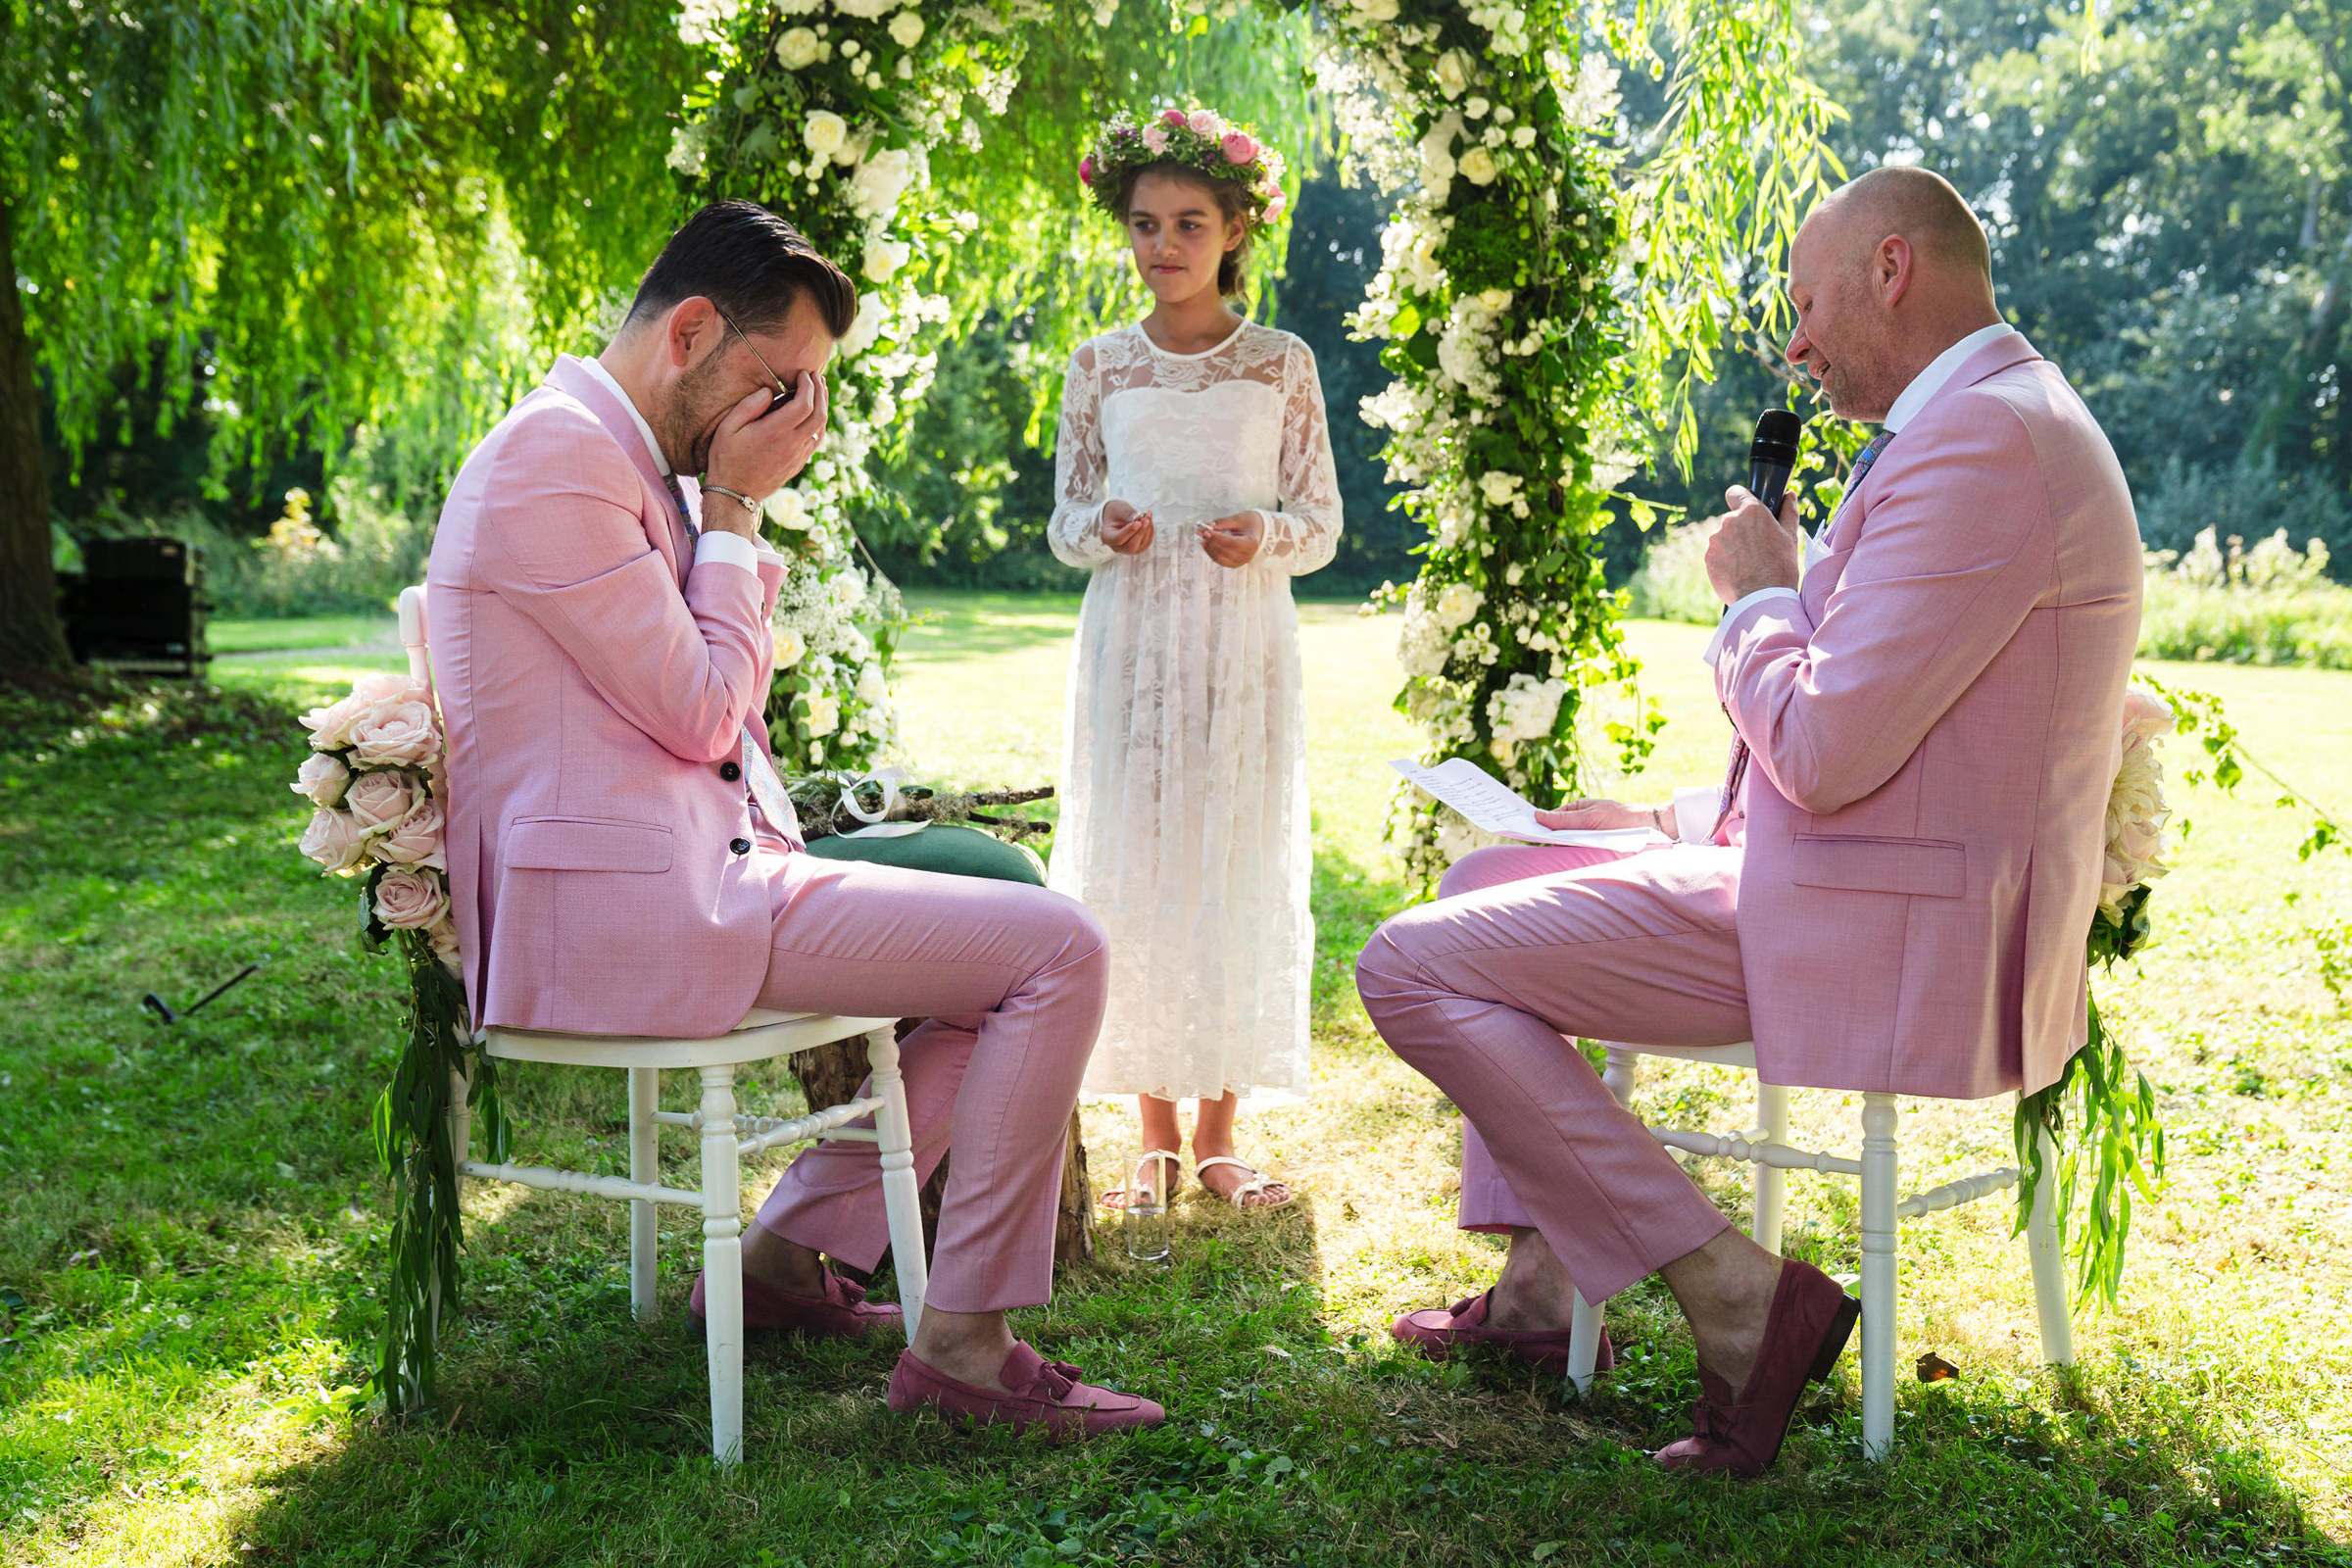 Groom tears up as flower girl reads at ceremony, photo by Philippe Swiggers